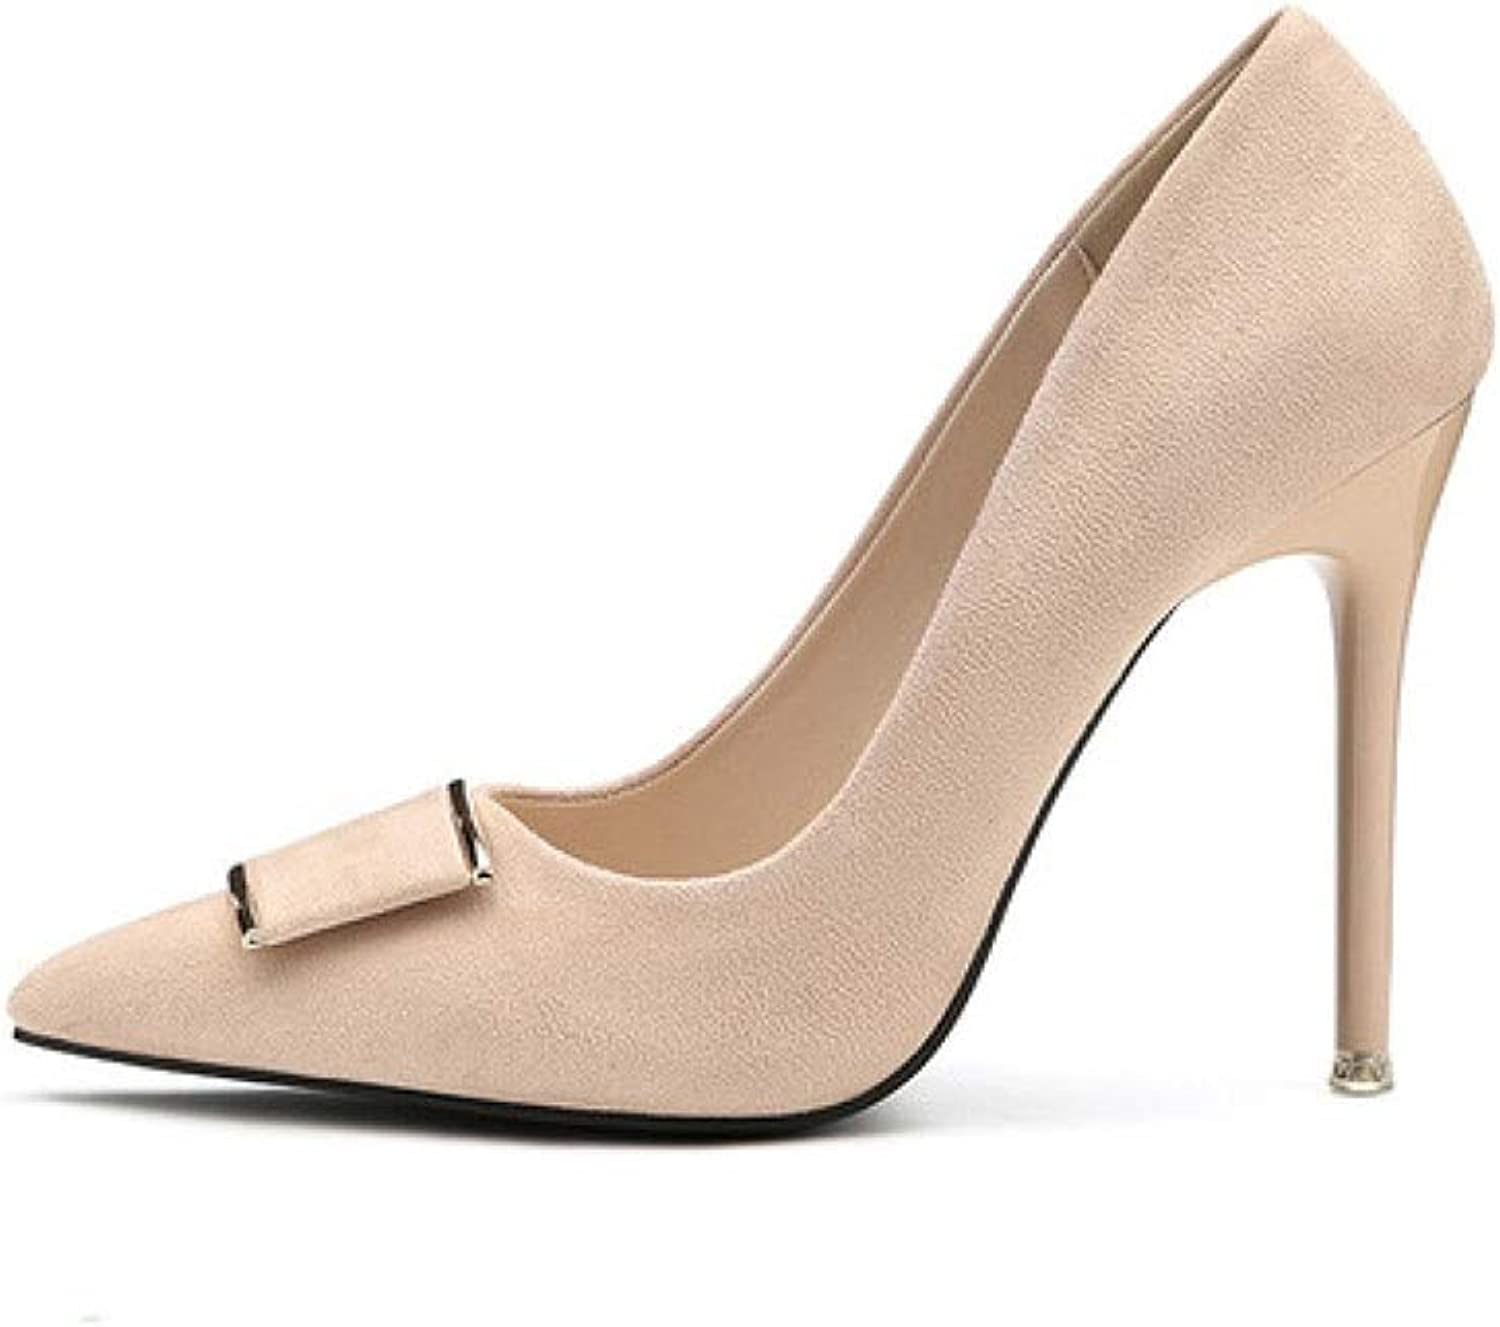 CBDGD High-Heeled shoes Women's Fashion Casual Elegant Temperament Buckle High Heels High-Heeled shoes Spring and Summer 10.5CM 4 colors High Heels